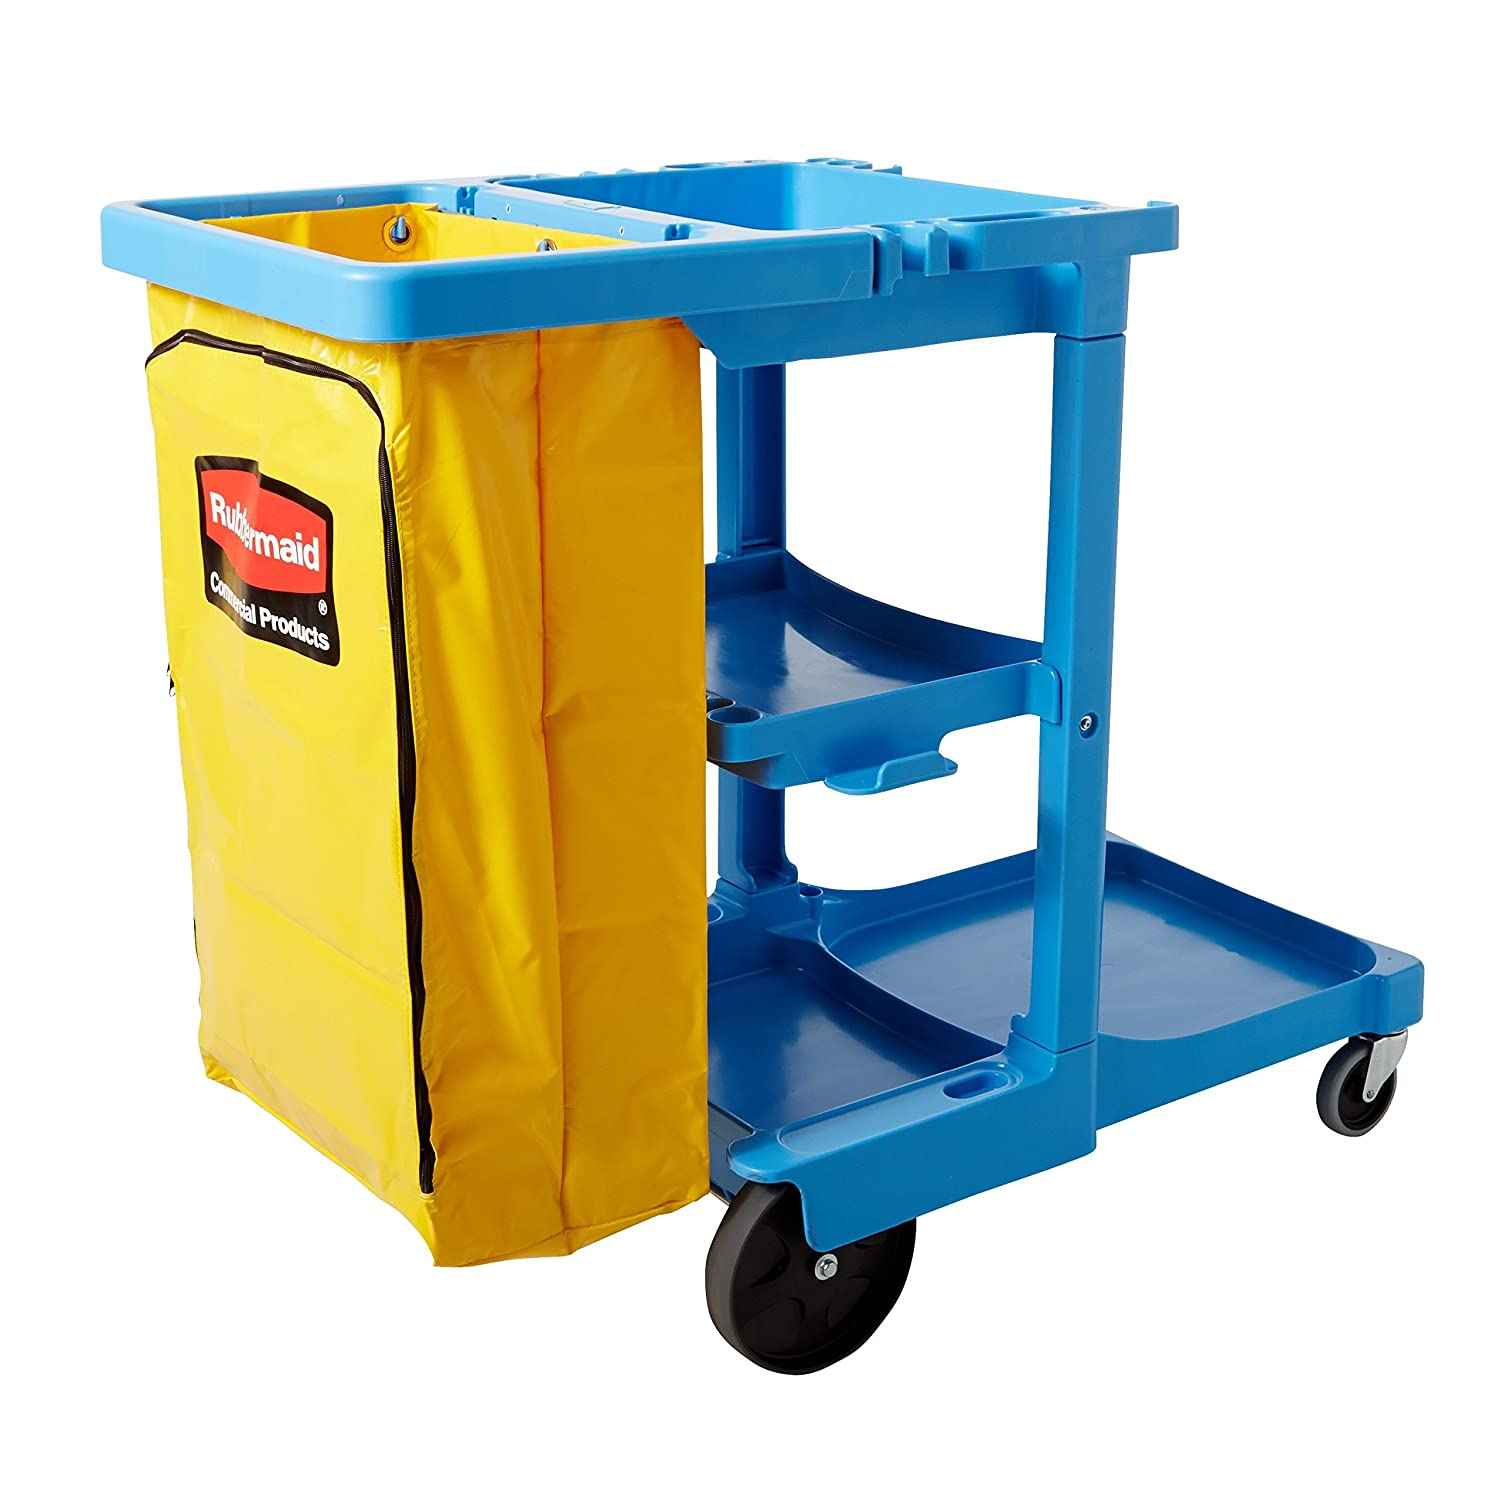 Rubbermaid Commercial Xtra Utility Cart, Blue, FG617388BLUE